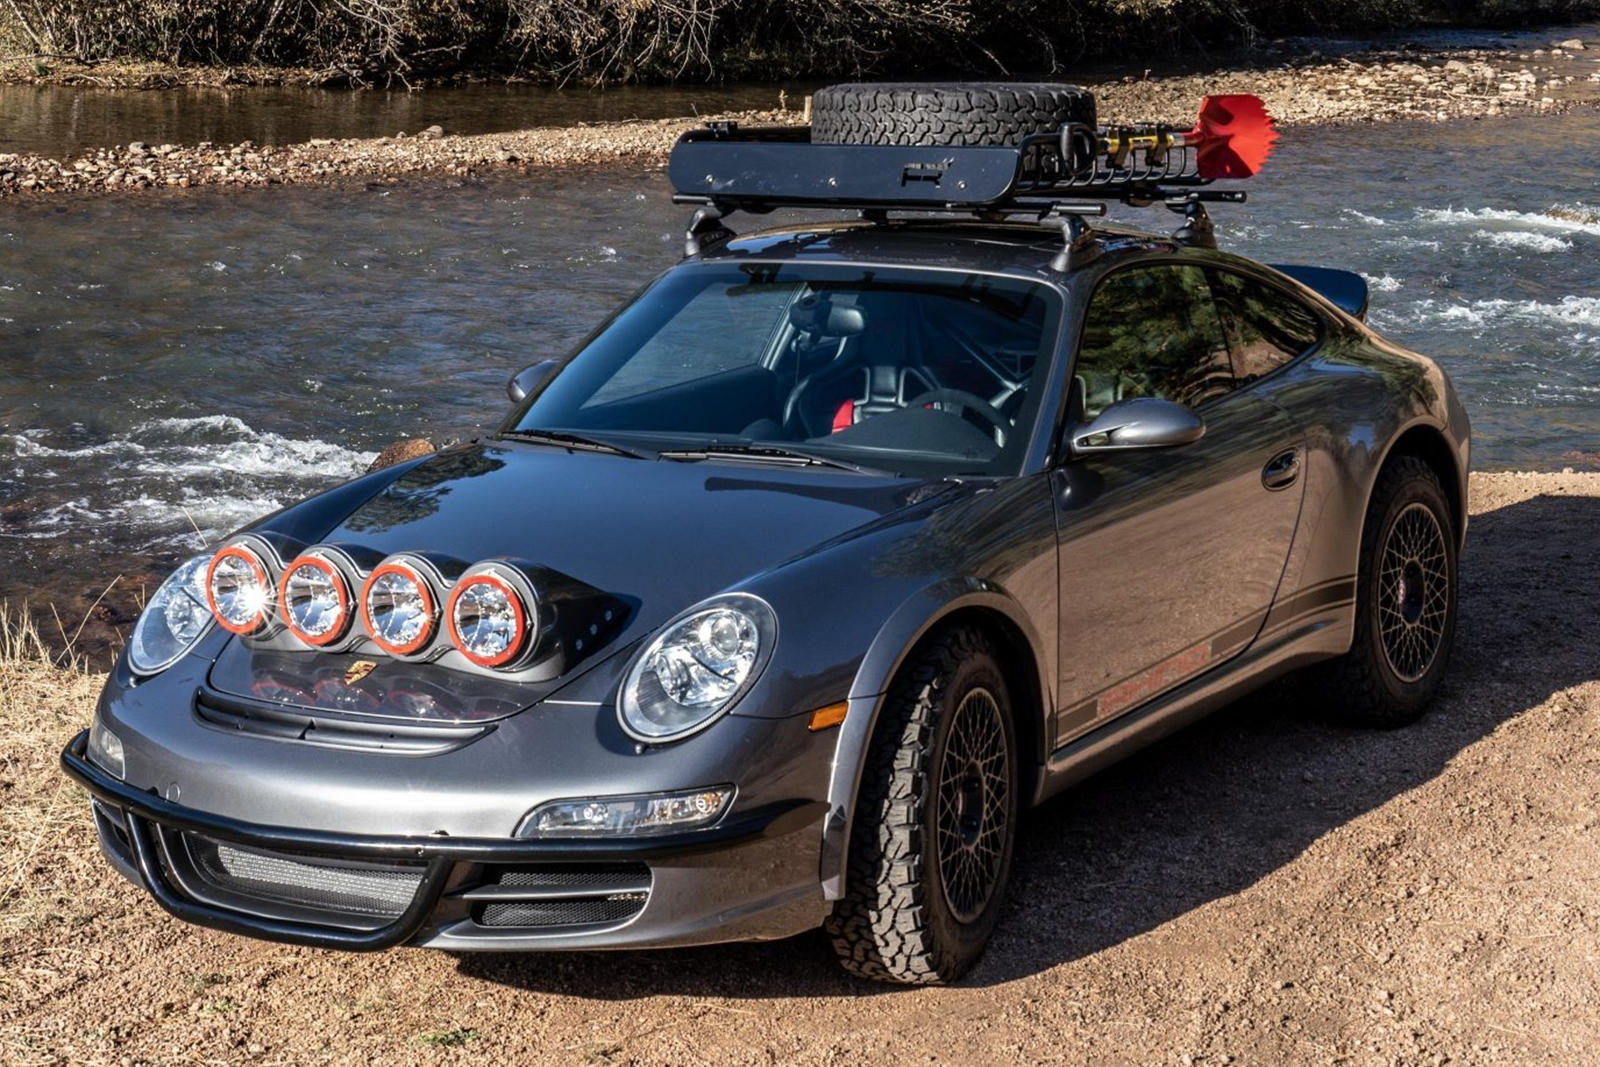 This Crazy Porsche 911 Carrera S Is Chasing Jeeps, Not McLarens